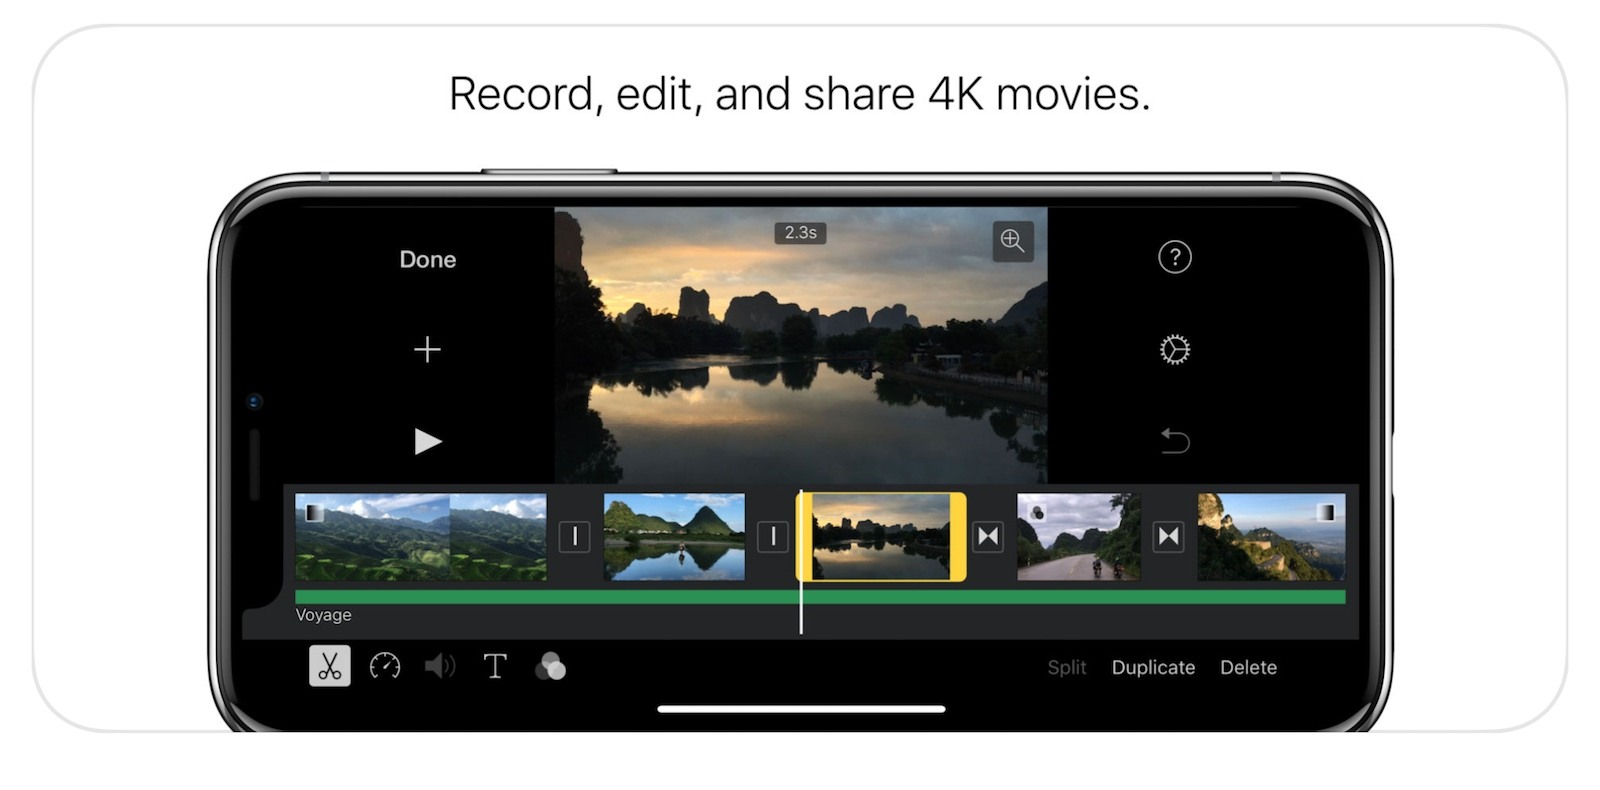 How To Use Imovie On Iphone